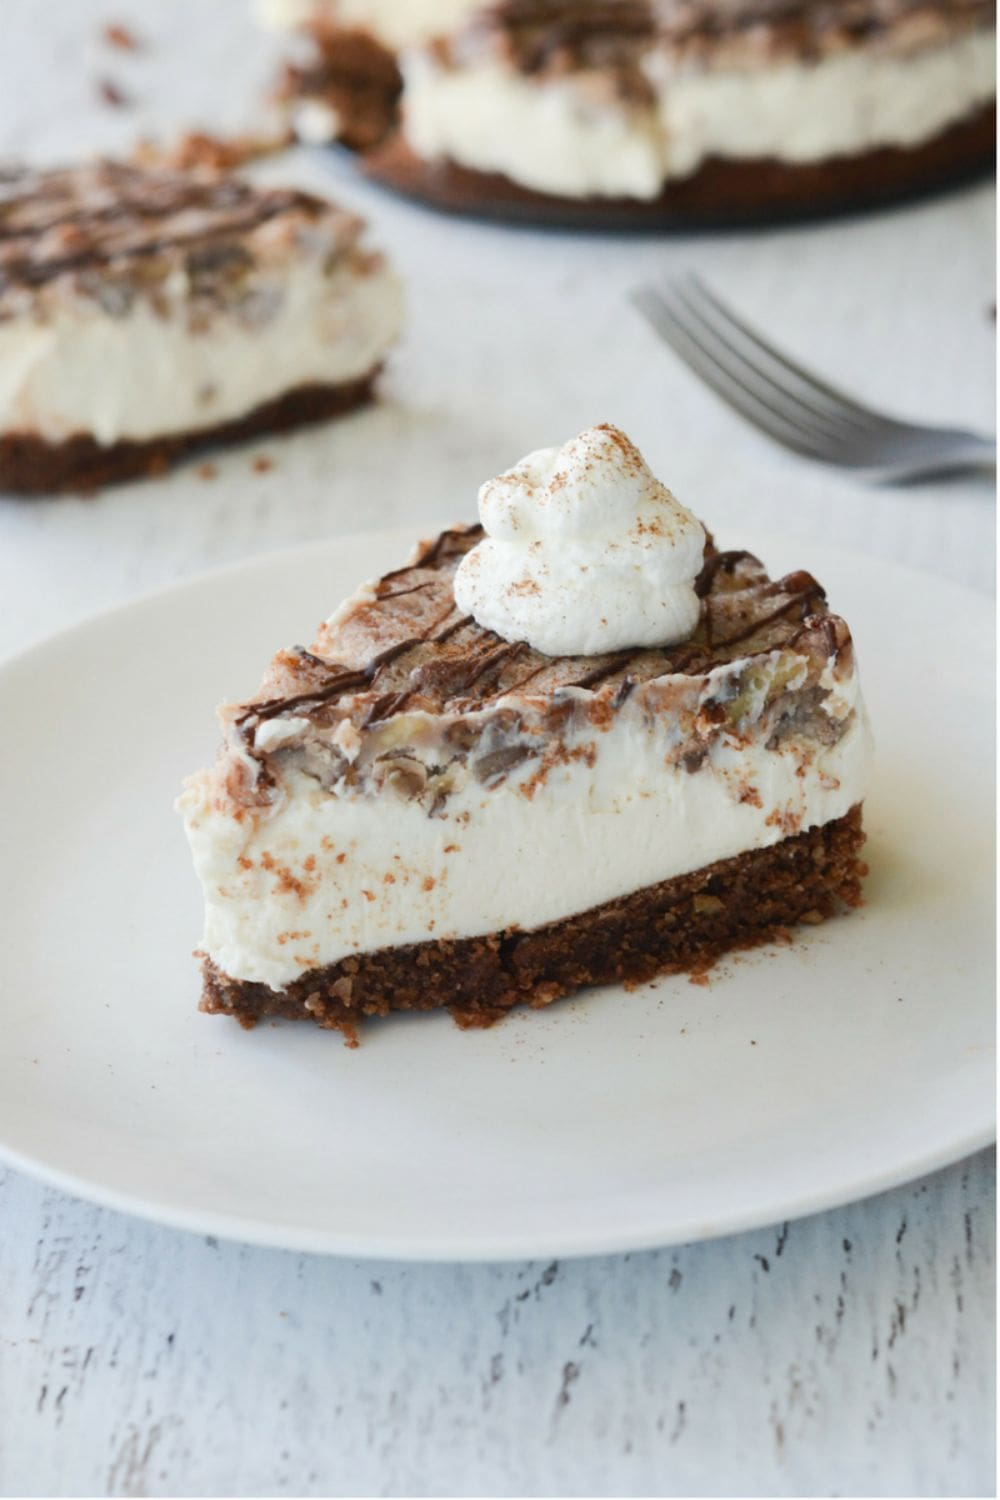 slice of pecan pie keto cheesecake sitting on a dish with pecans and whipped cream topping